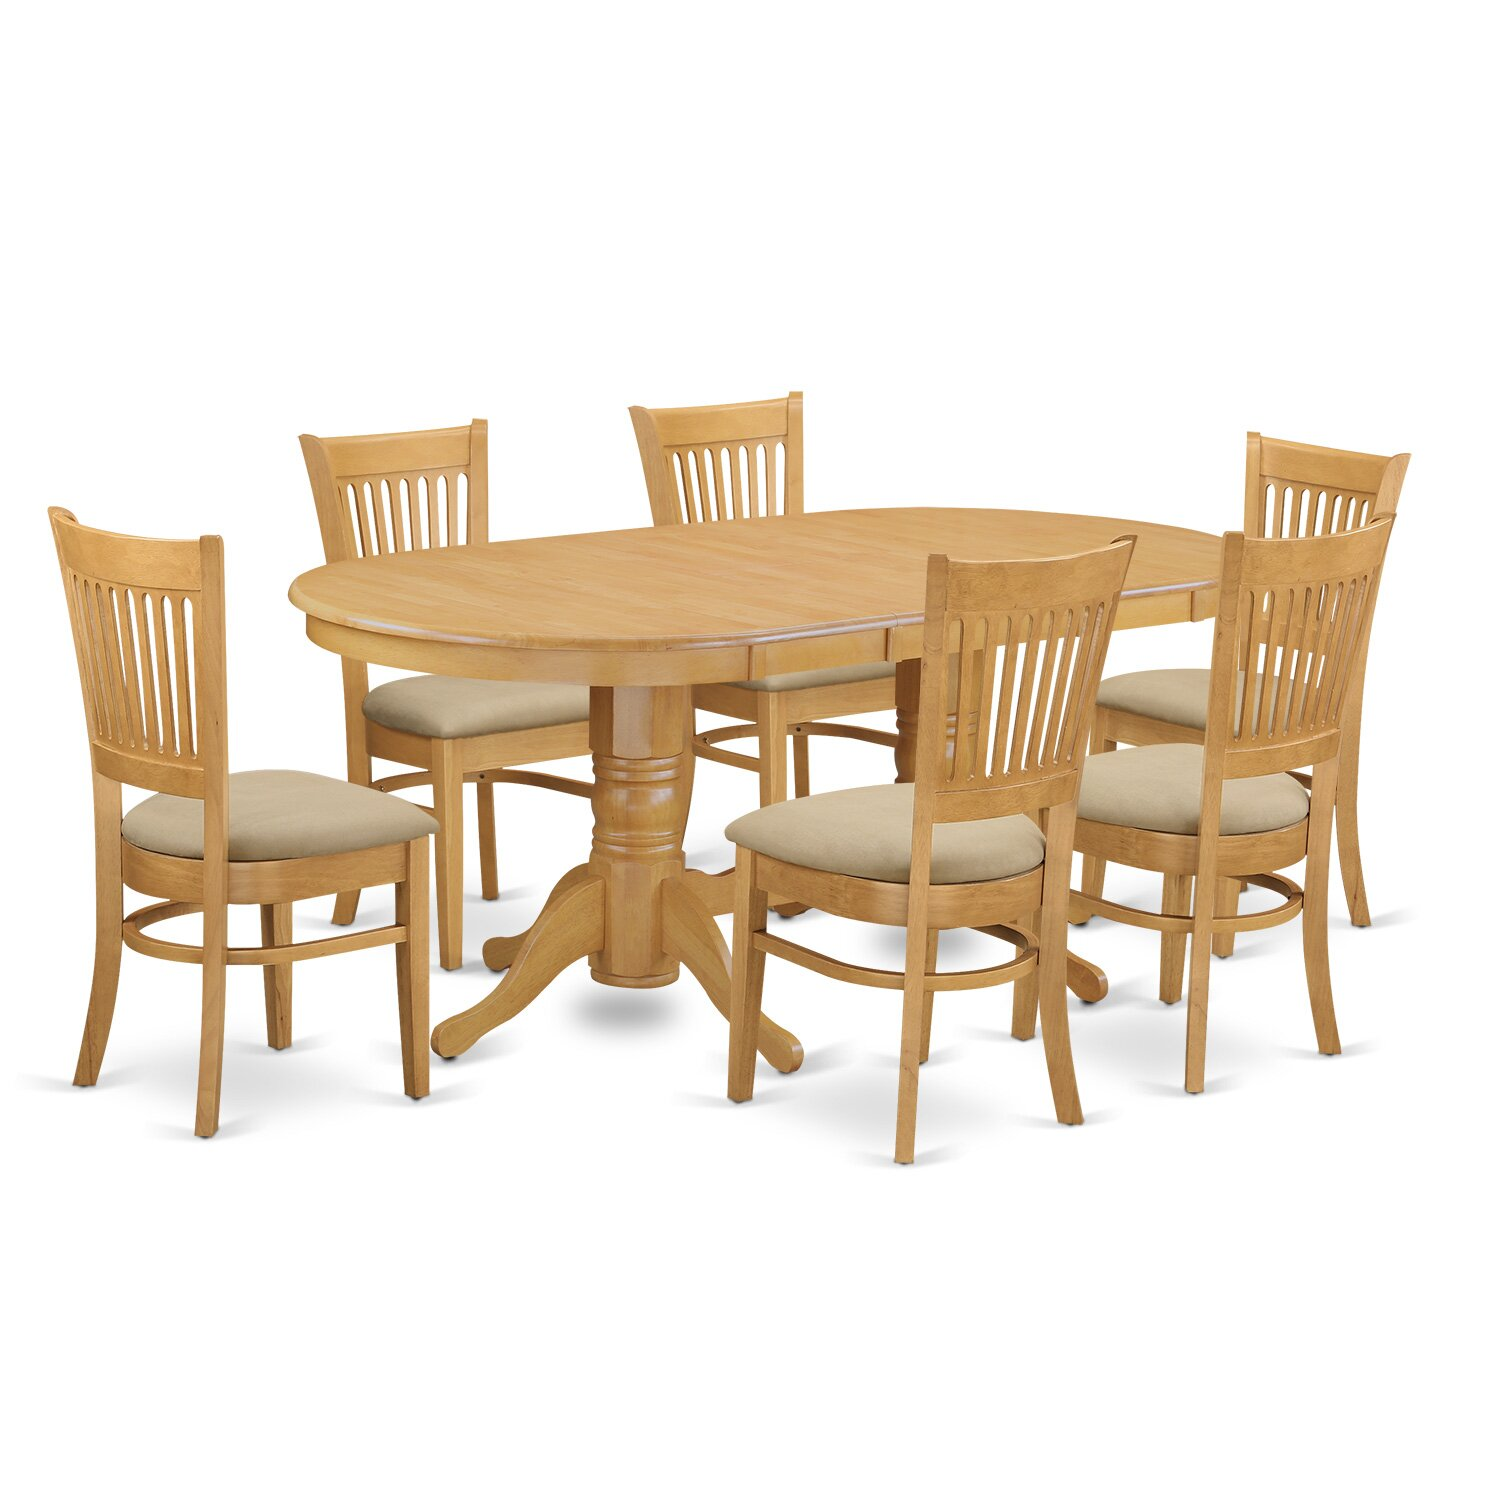 Darby home co rockdale 7 piece dining set reviews wayfair for 7 piece dining set